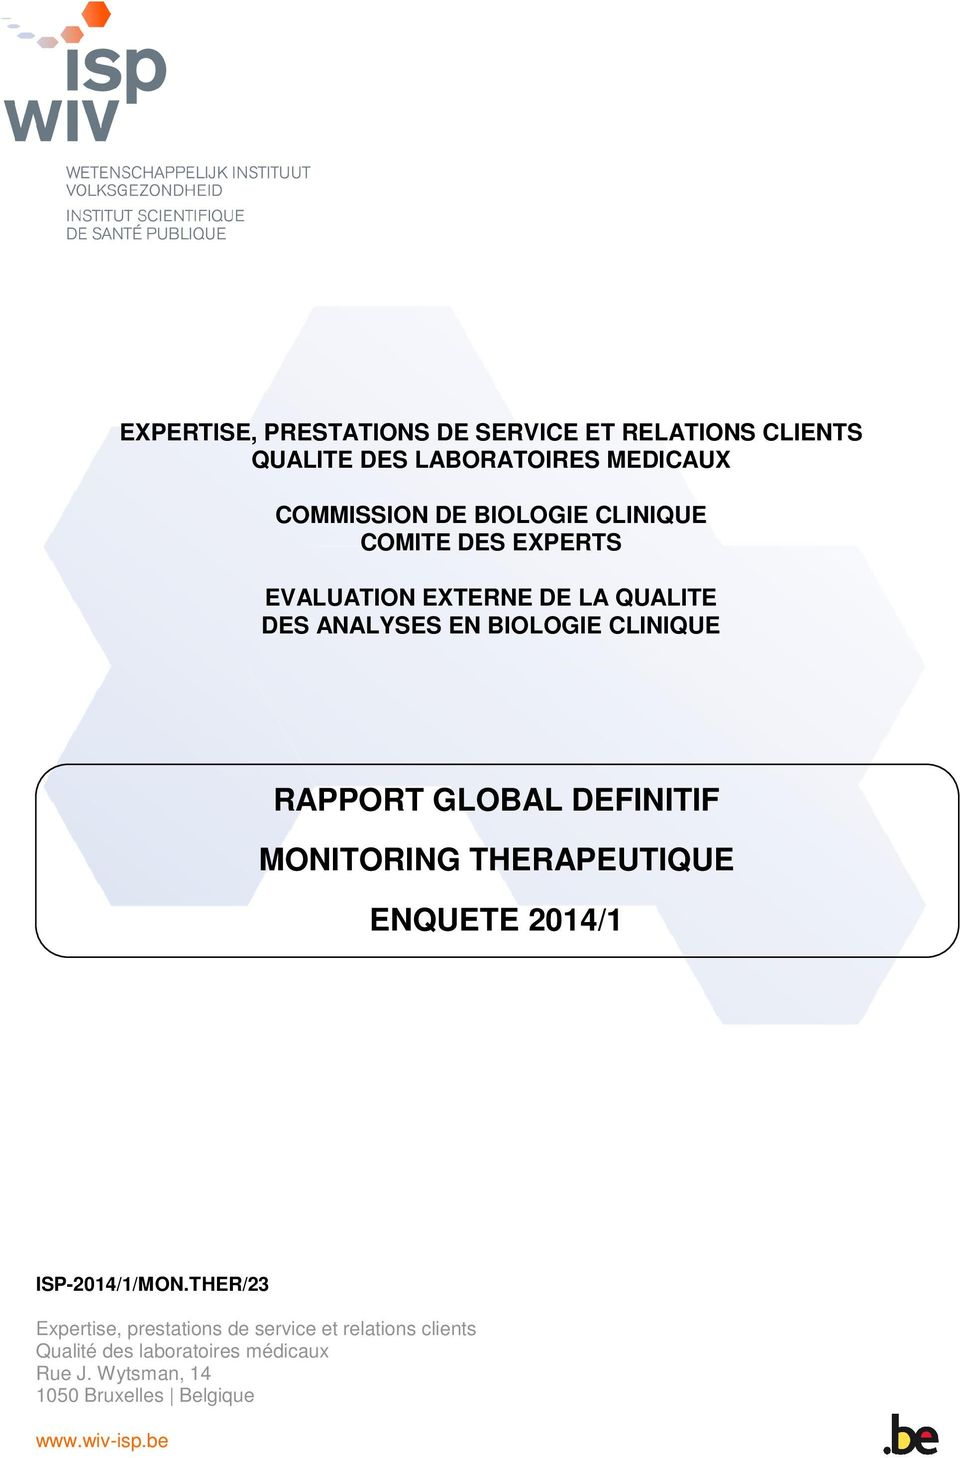 RAPPORT GLOBAL DEFINITIF MONITORING THERAPEUTIQUE ENQUETE 2014/1 ISP-2014/1/MON.